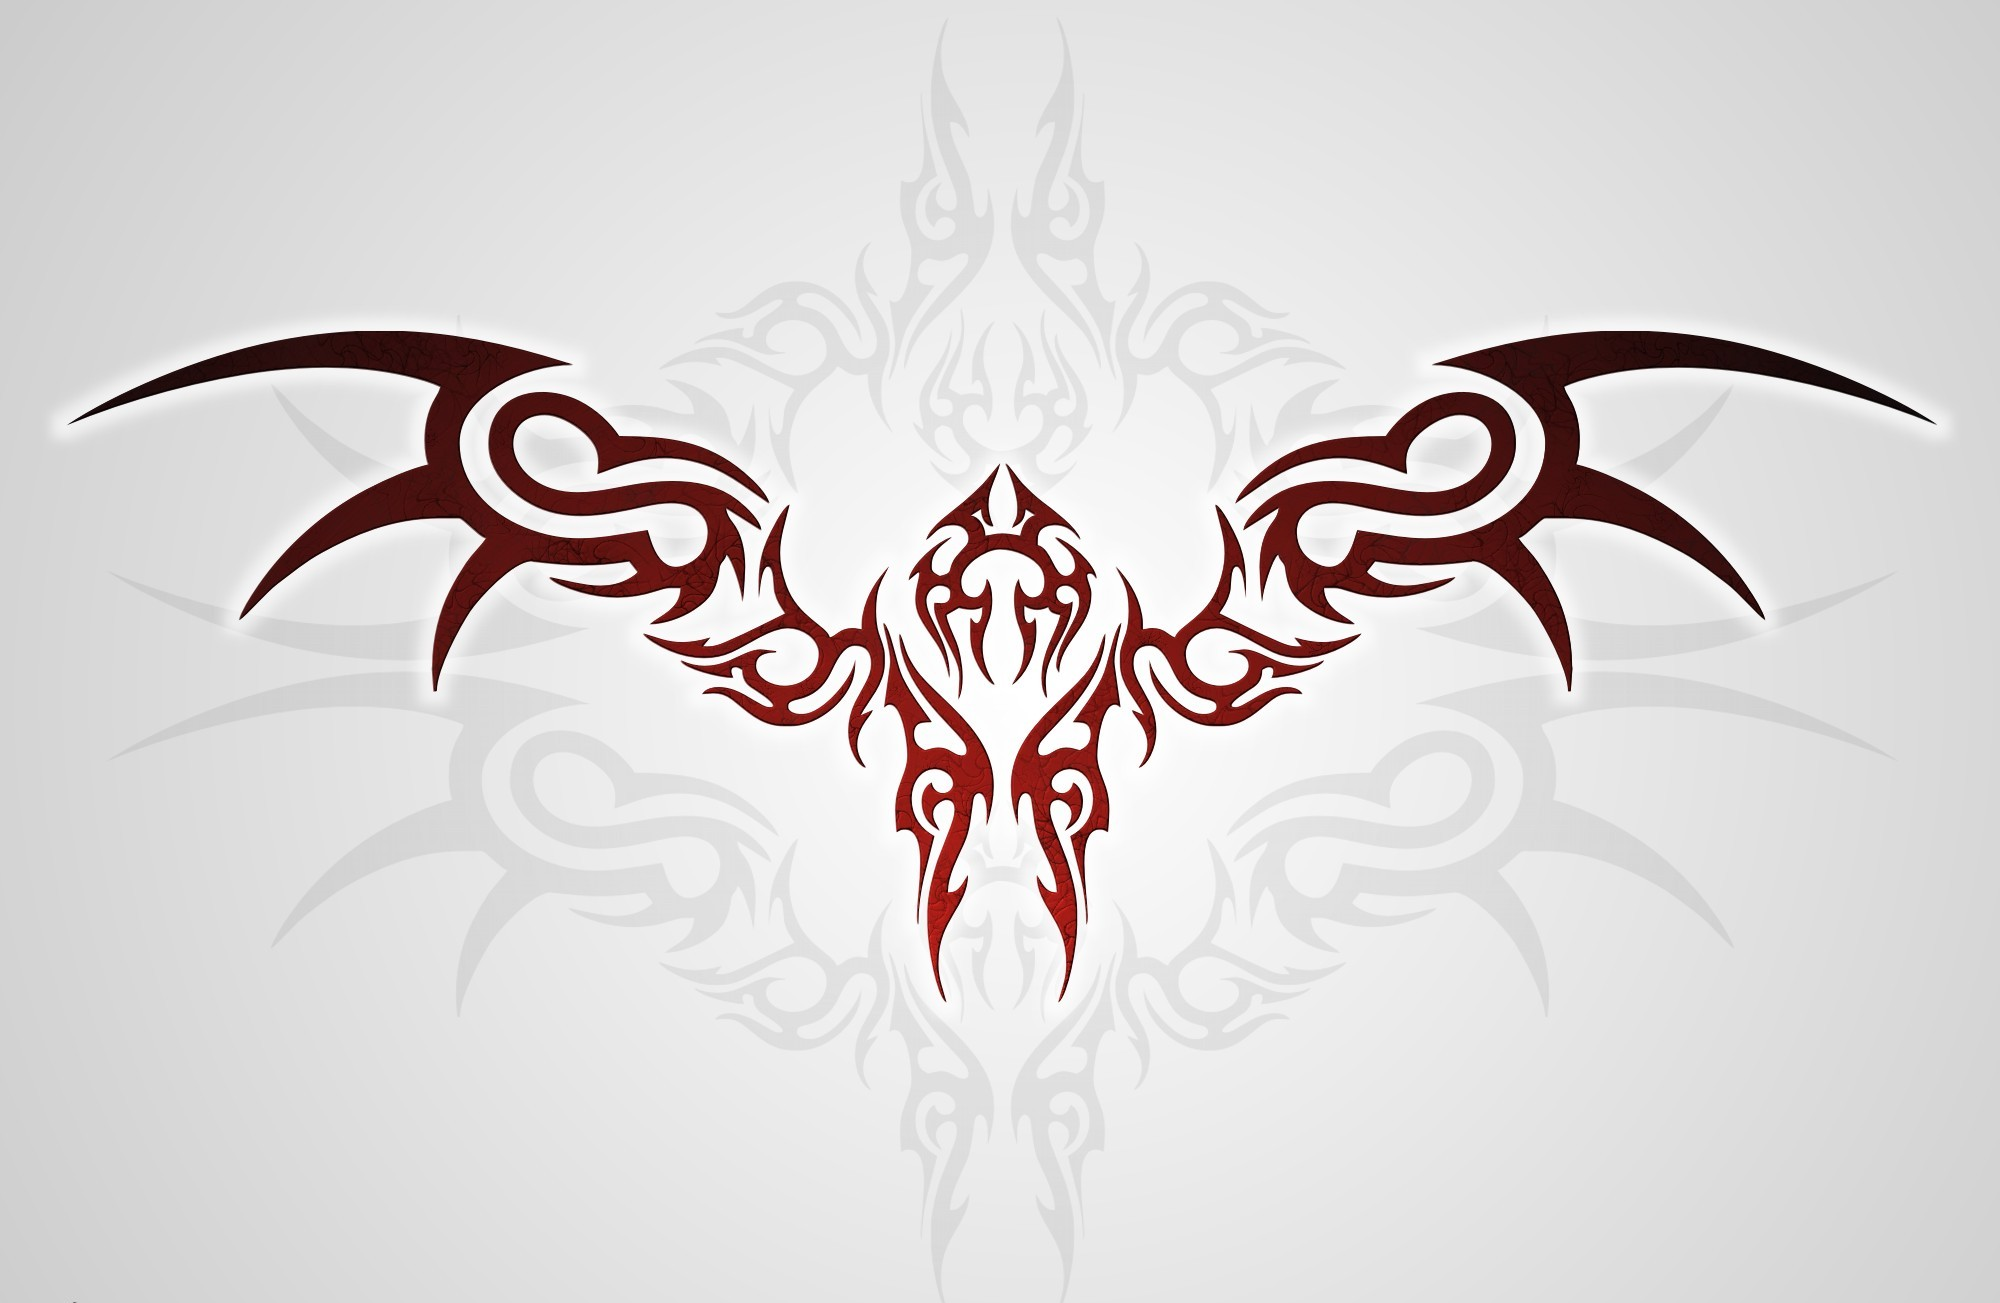 Tribal Design Wallpaper : Tribal designs images hd desktop wallpapers k